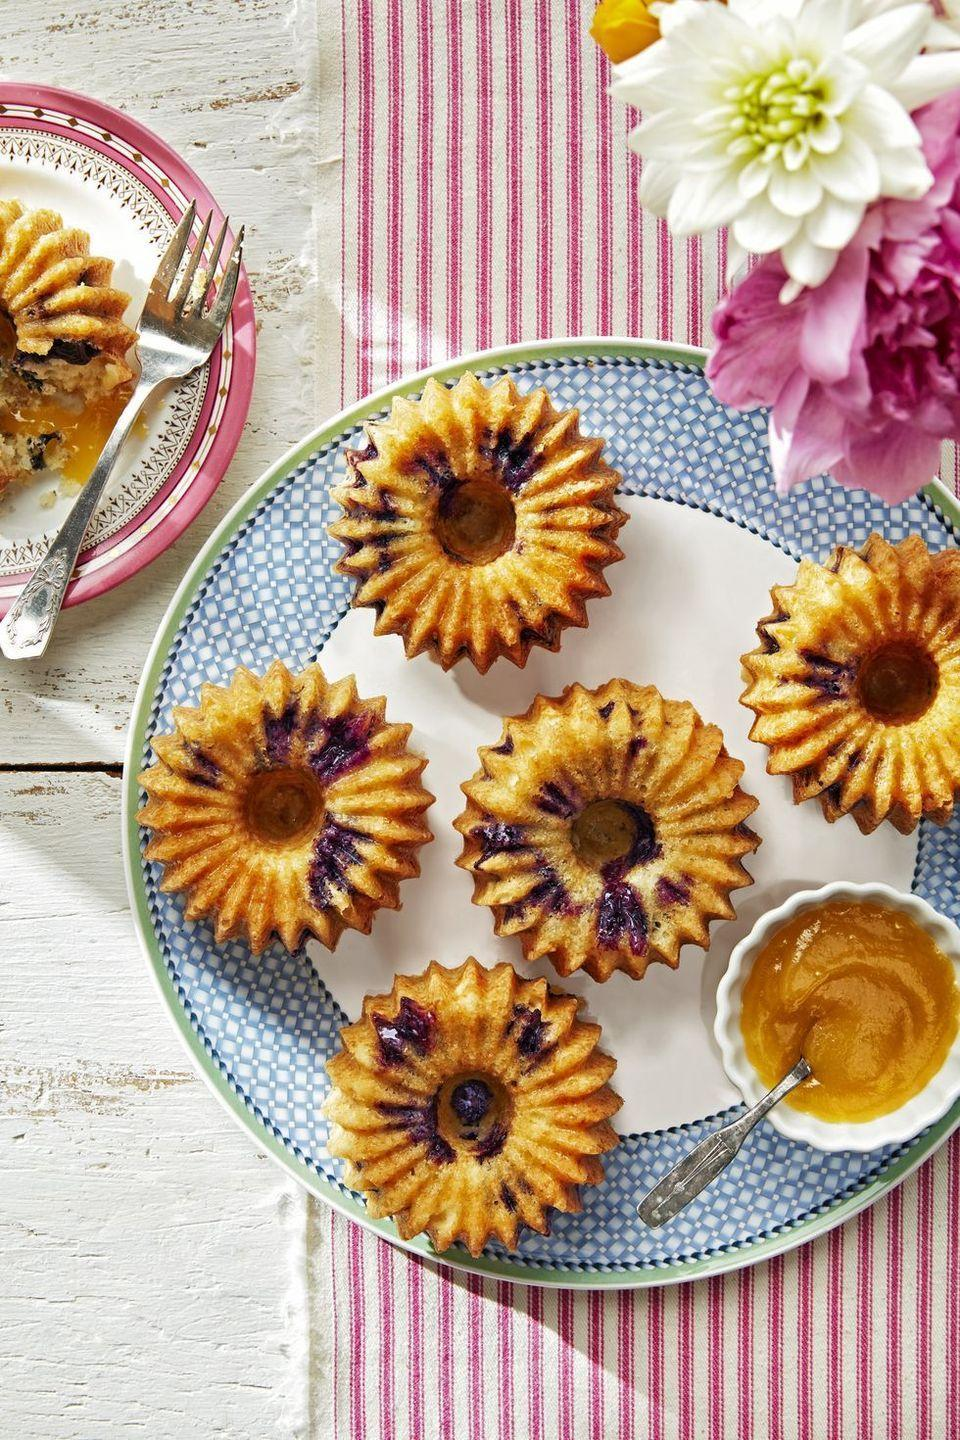 """<p>Serve these cute cakes with sweet and tangy lemon curd.</p><p><em><a href=""""https://www.countryliving.com/food-drinks/a27245094/meyer-lemon-blueberry-cake-recipe/"""" rel=""""nofollow noopener"""" target=""""_blank"""" data-ylk=""""slk:Get the recipe from Country Living »"""" class=""""link rapid-noclick-resp"""">Get the recipe from Country Living »</a></em></p>"""